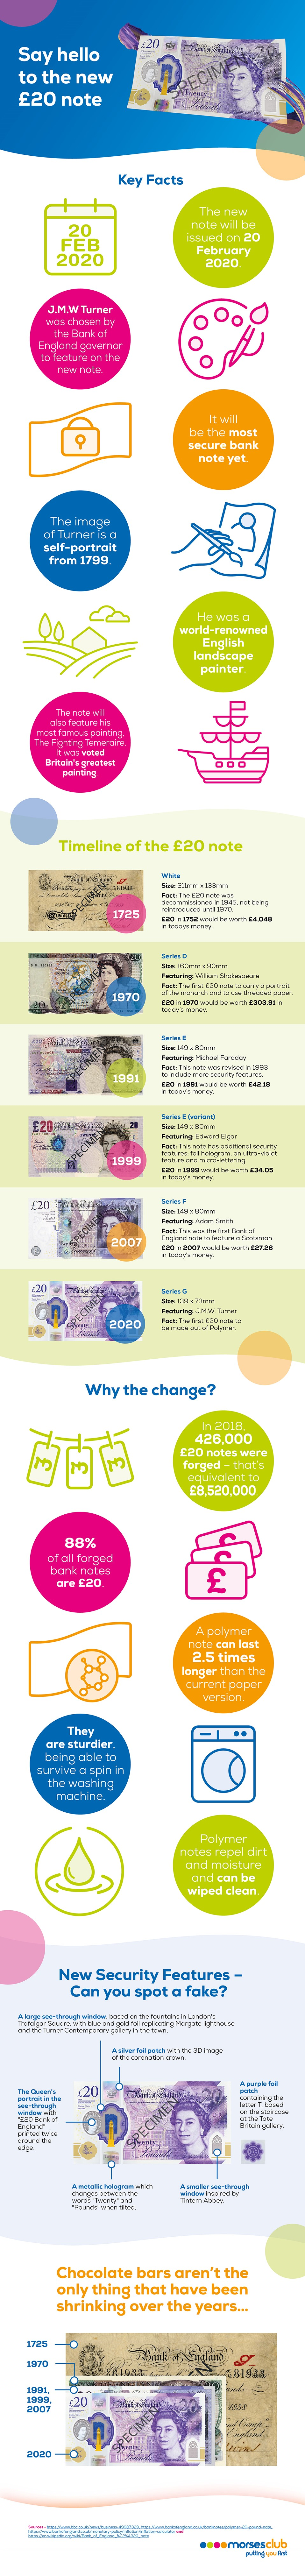 Say hello to the new £20 note!